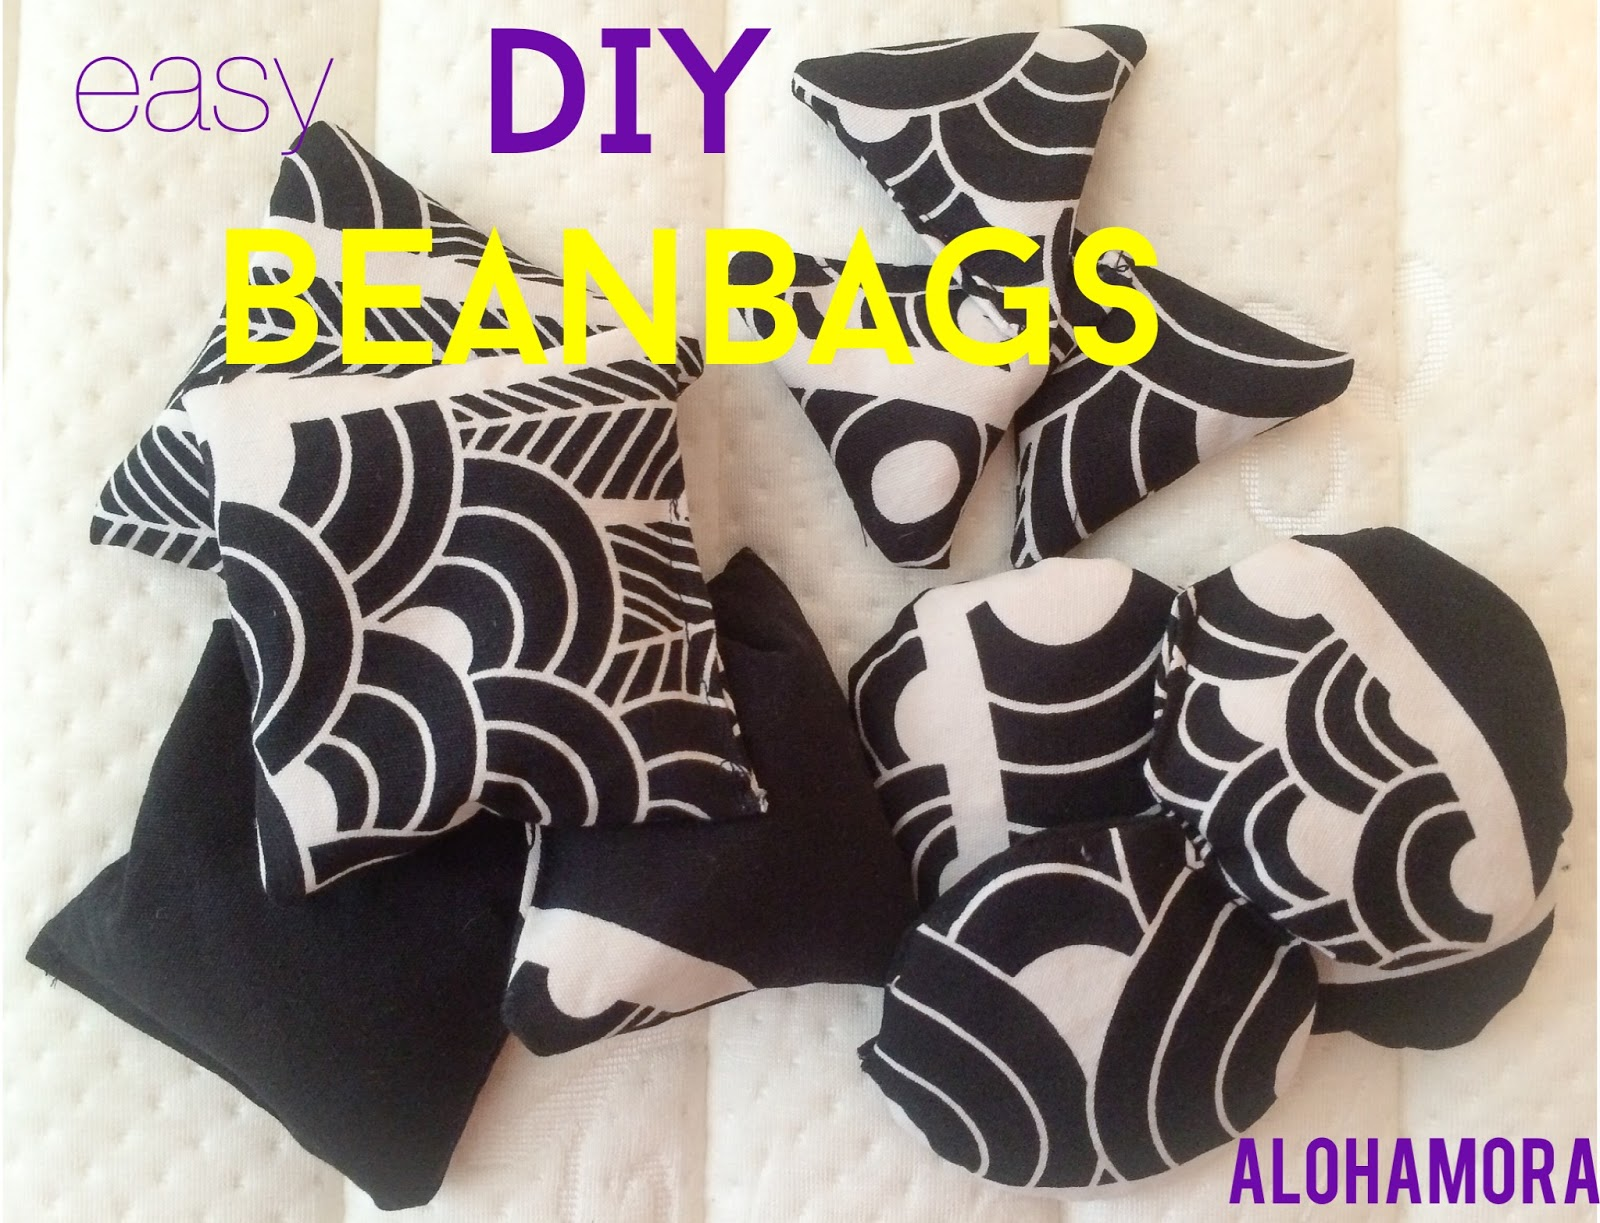 Easy DIY Homemade Beanbags with a free printable pattern for square, circle, and triangle beanbags.  Easy to make, cheap (dry beans and scrap fabric are your only costs), and the kids LOVE playing with them.  Easy sewing pattern for beginners.  Alohamora Open a Book http://www.alohamoraopenabook.blogspot.com/